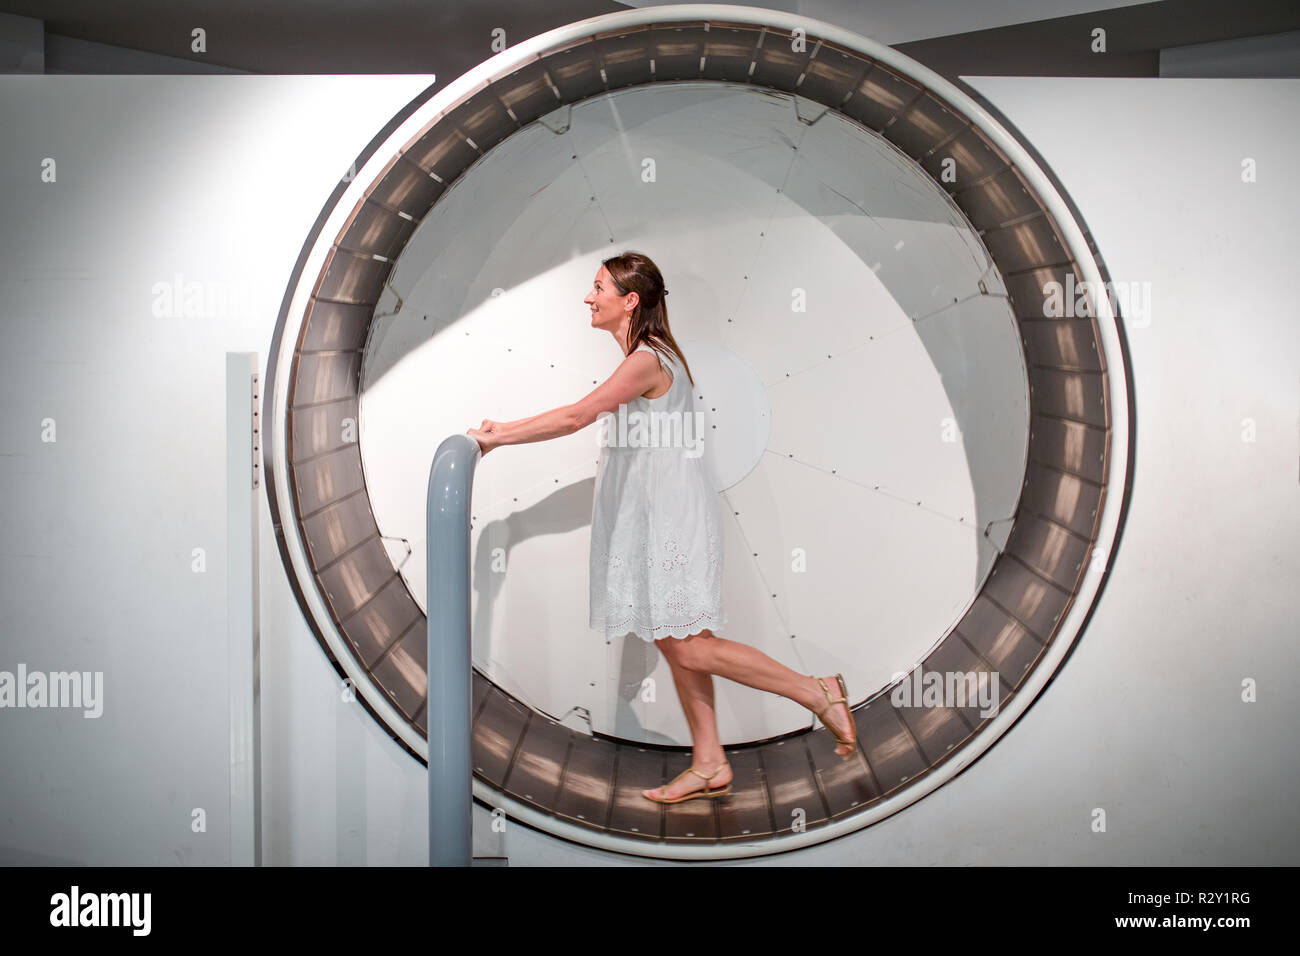 Happy woman having fun int the hamster like wheel. The eternal wheel of live - Stock Image